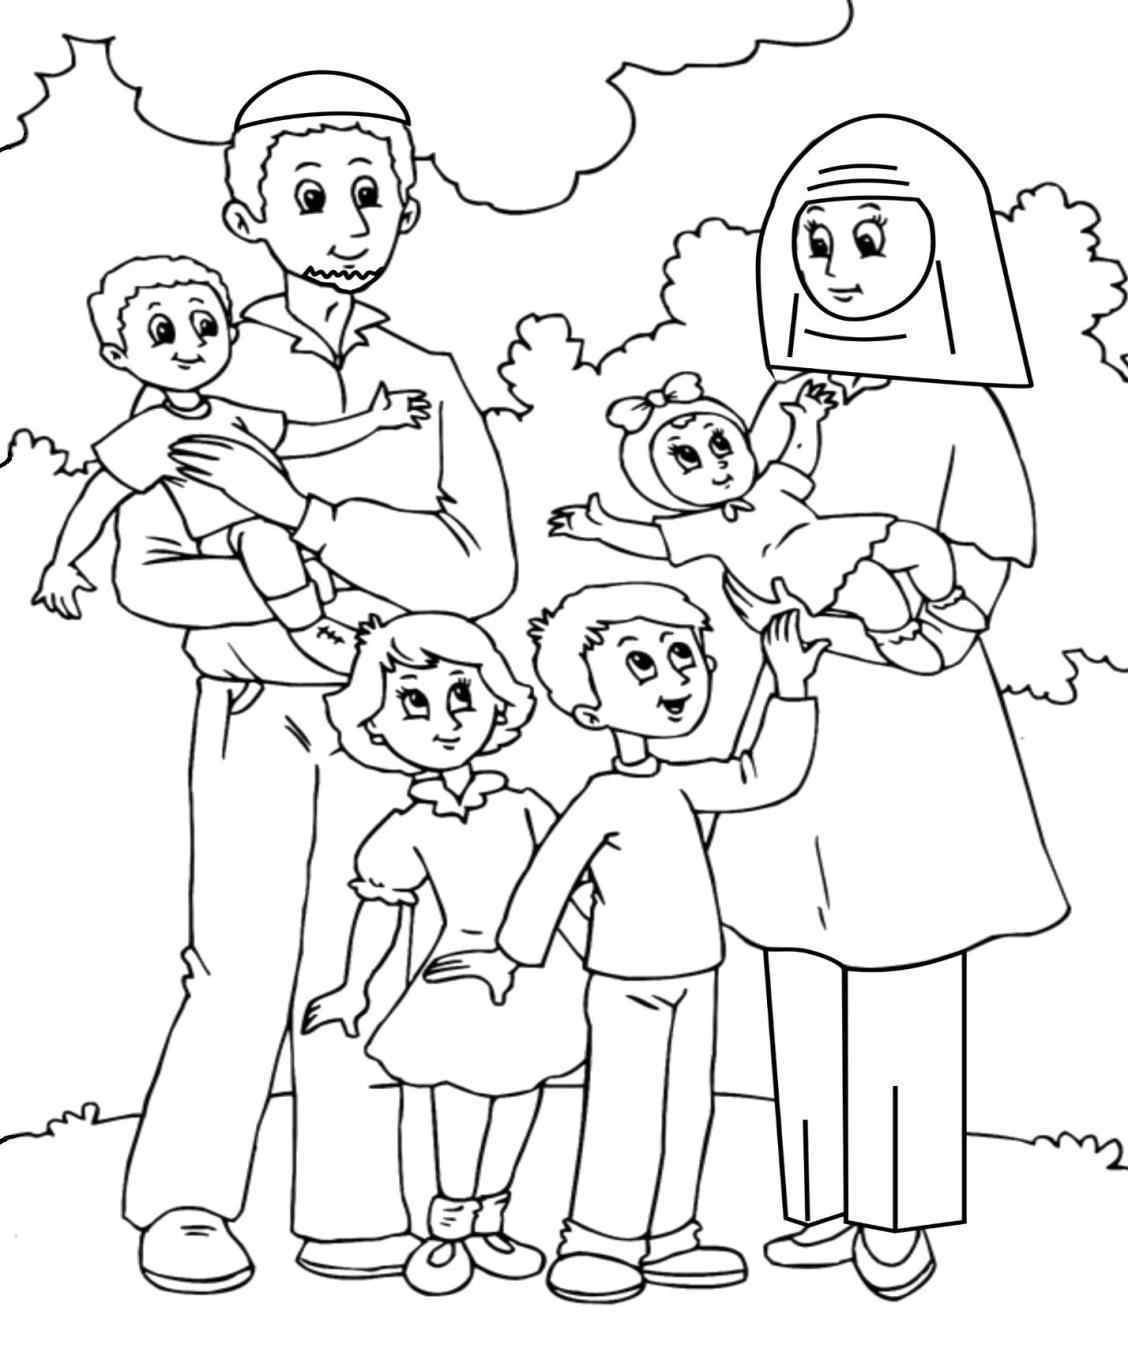 1128x1356 Wecoloringpage Animal Family Coloring Pages For Adults Dog Family